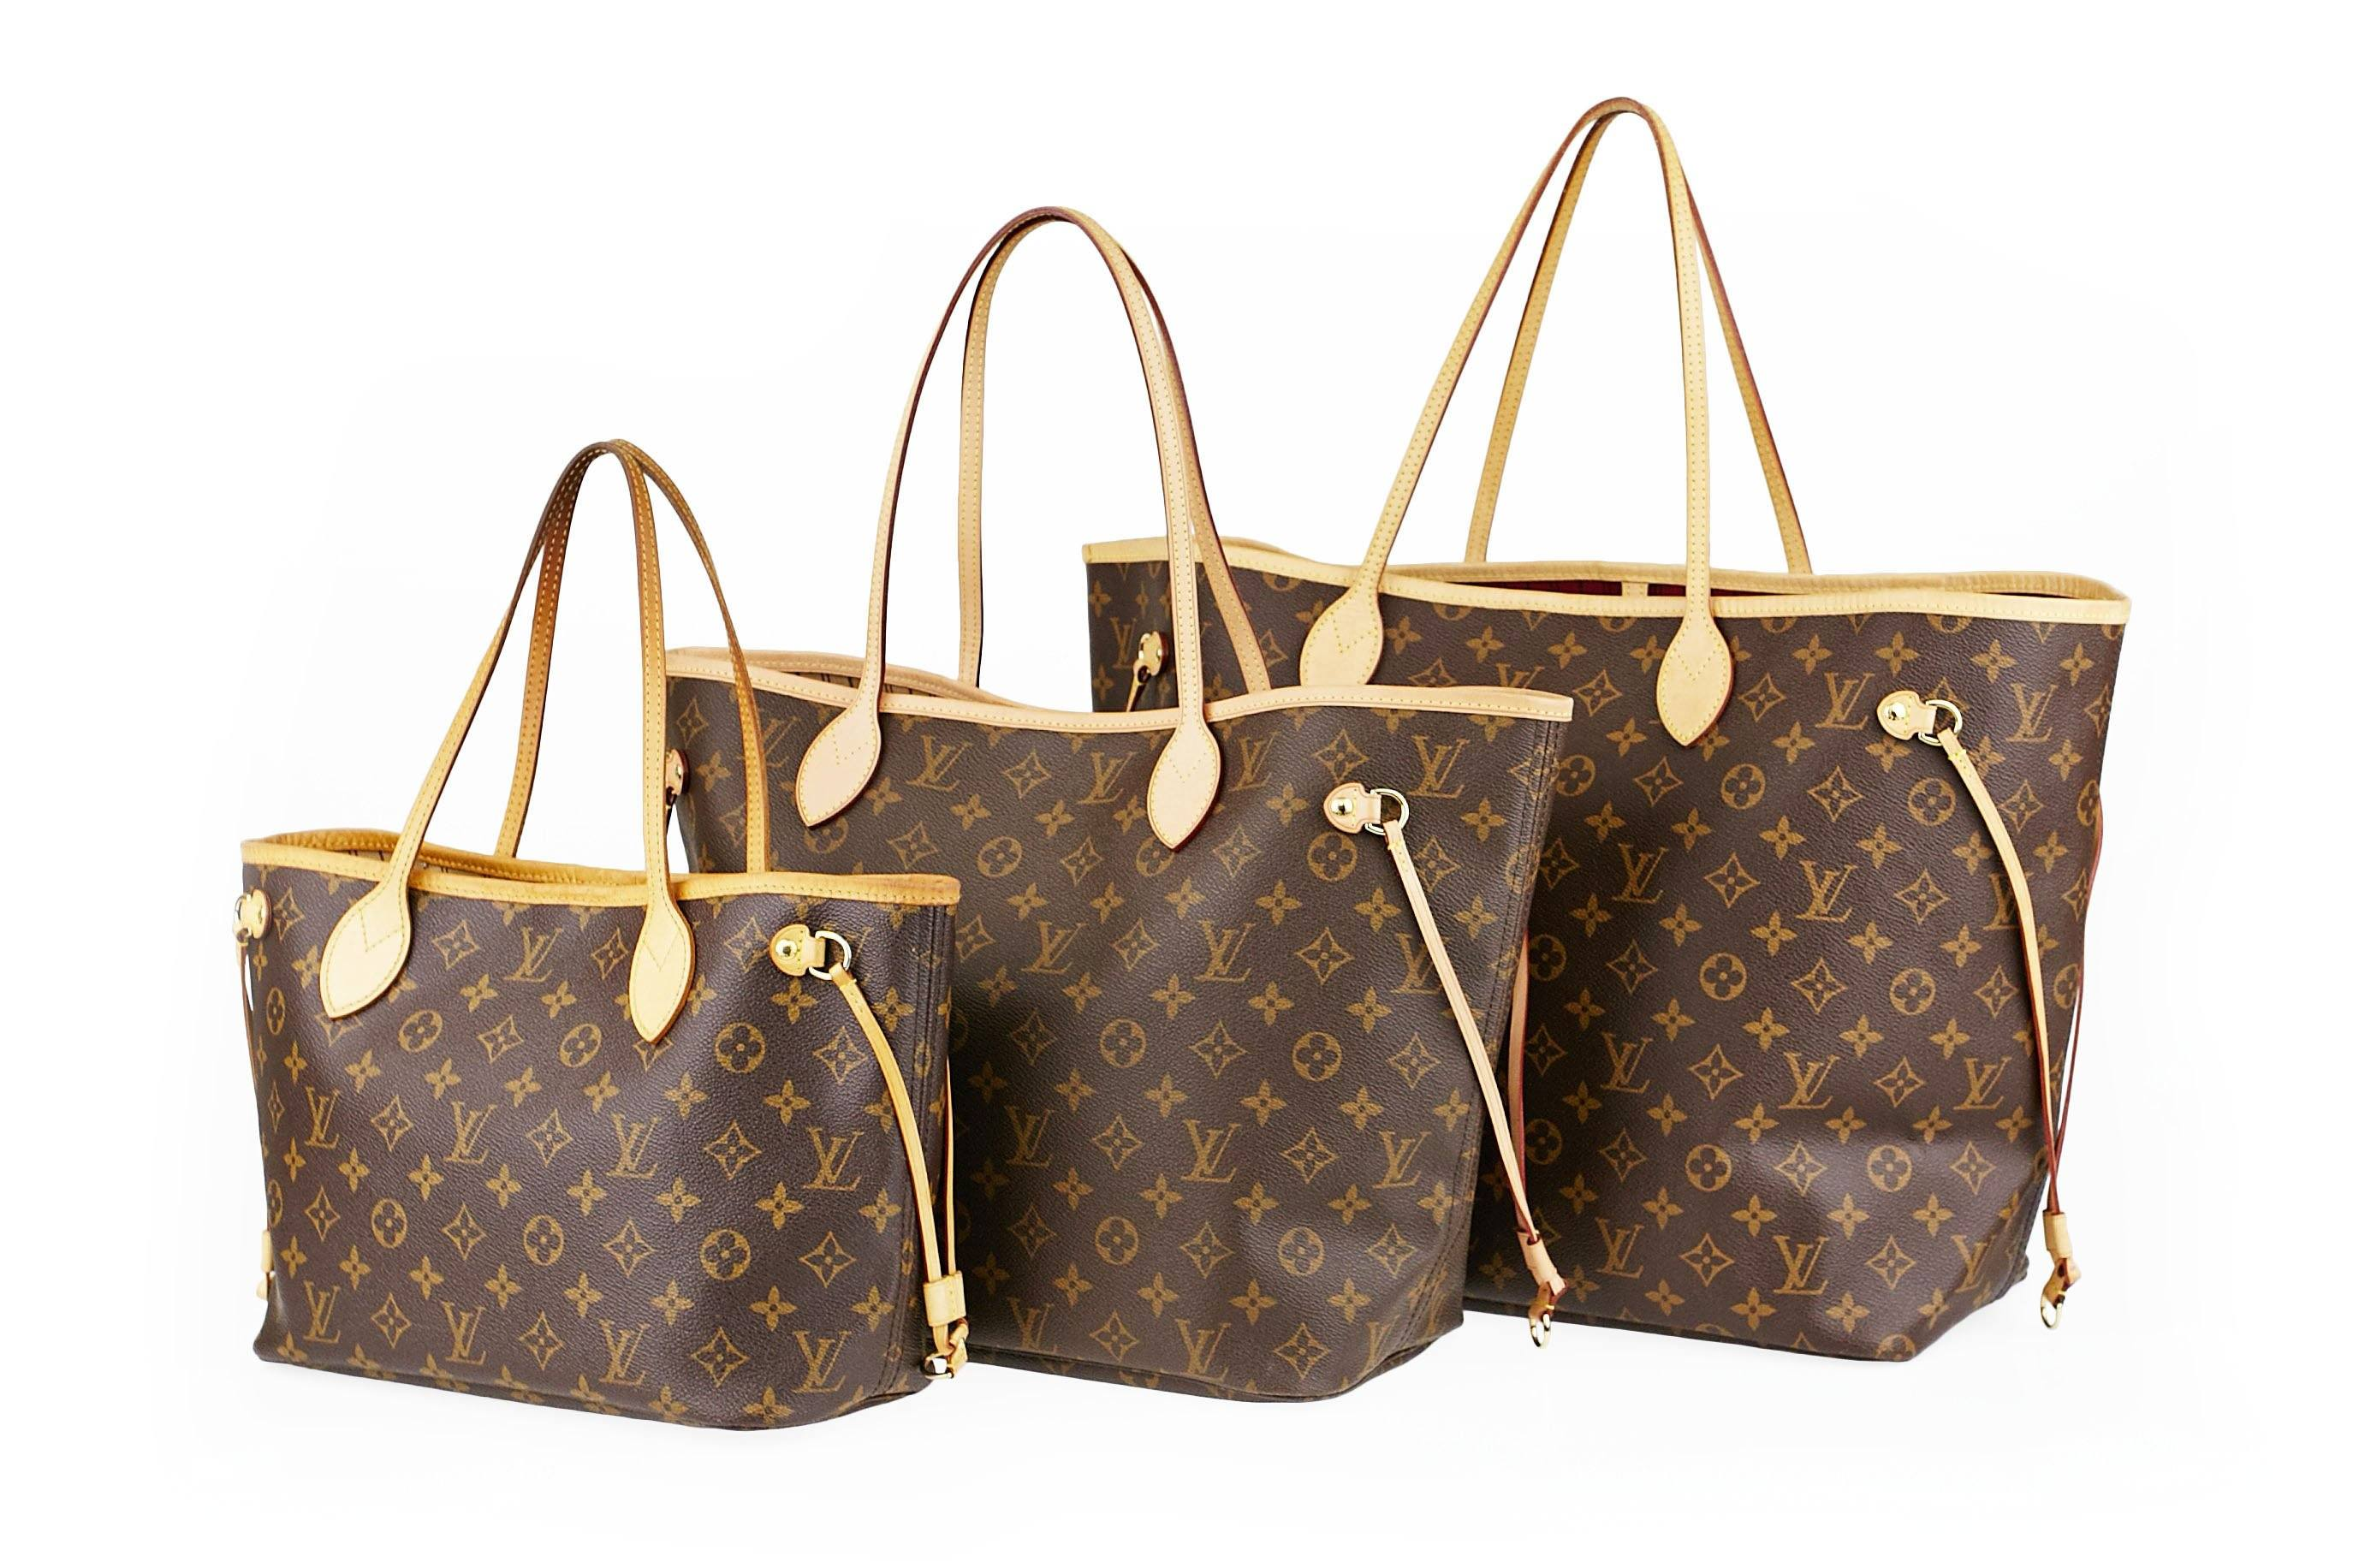 0cd3270f6 LOUIS VUITTON NEVERFULL BUYING GUIDE